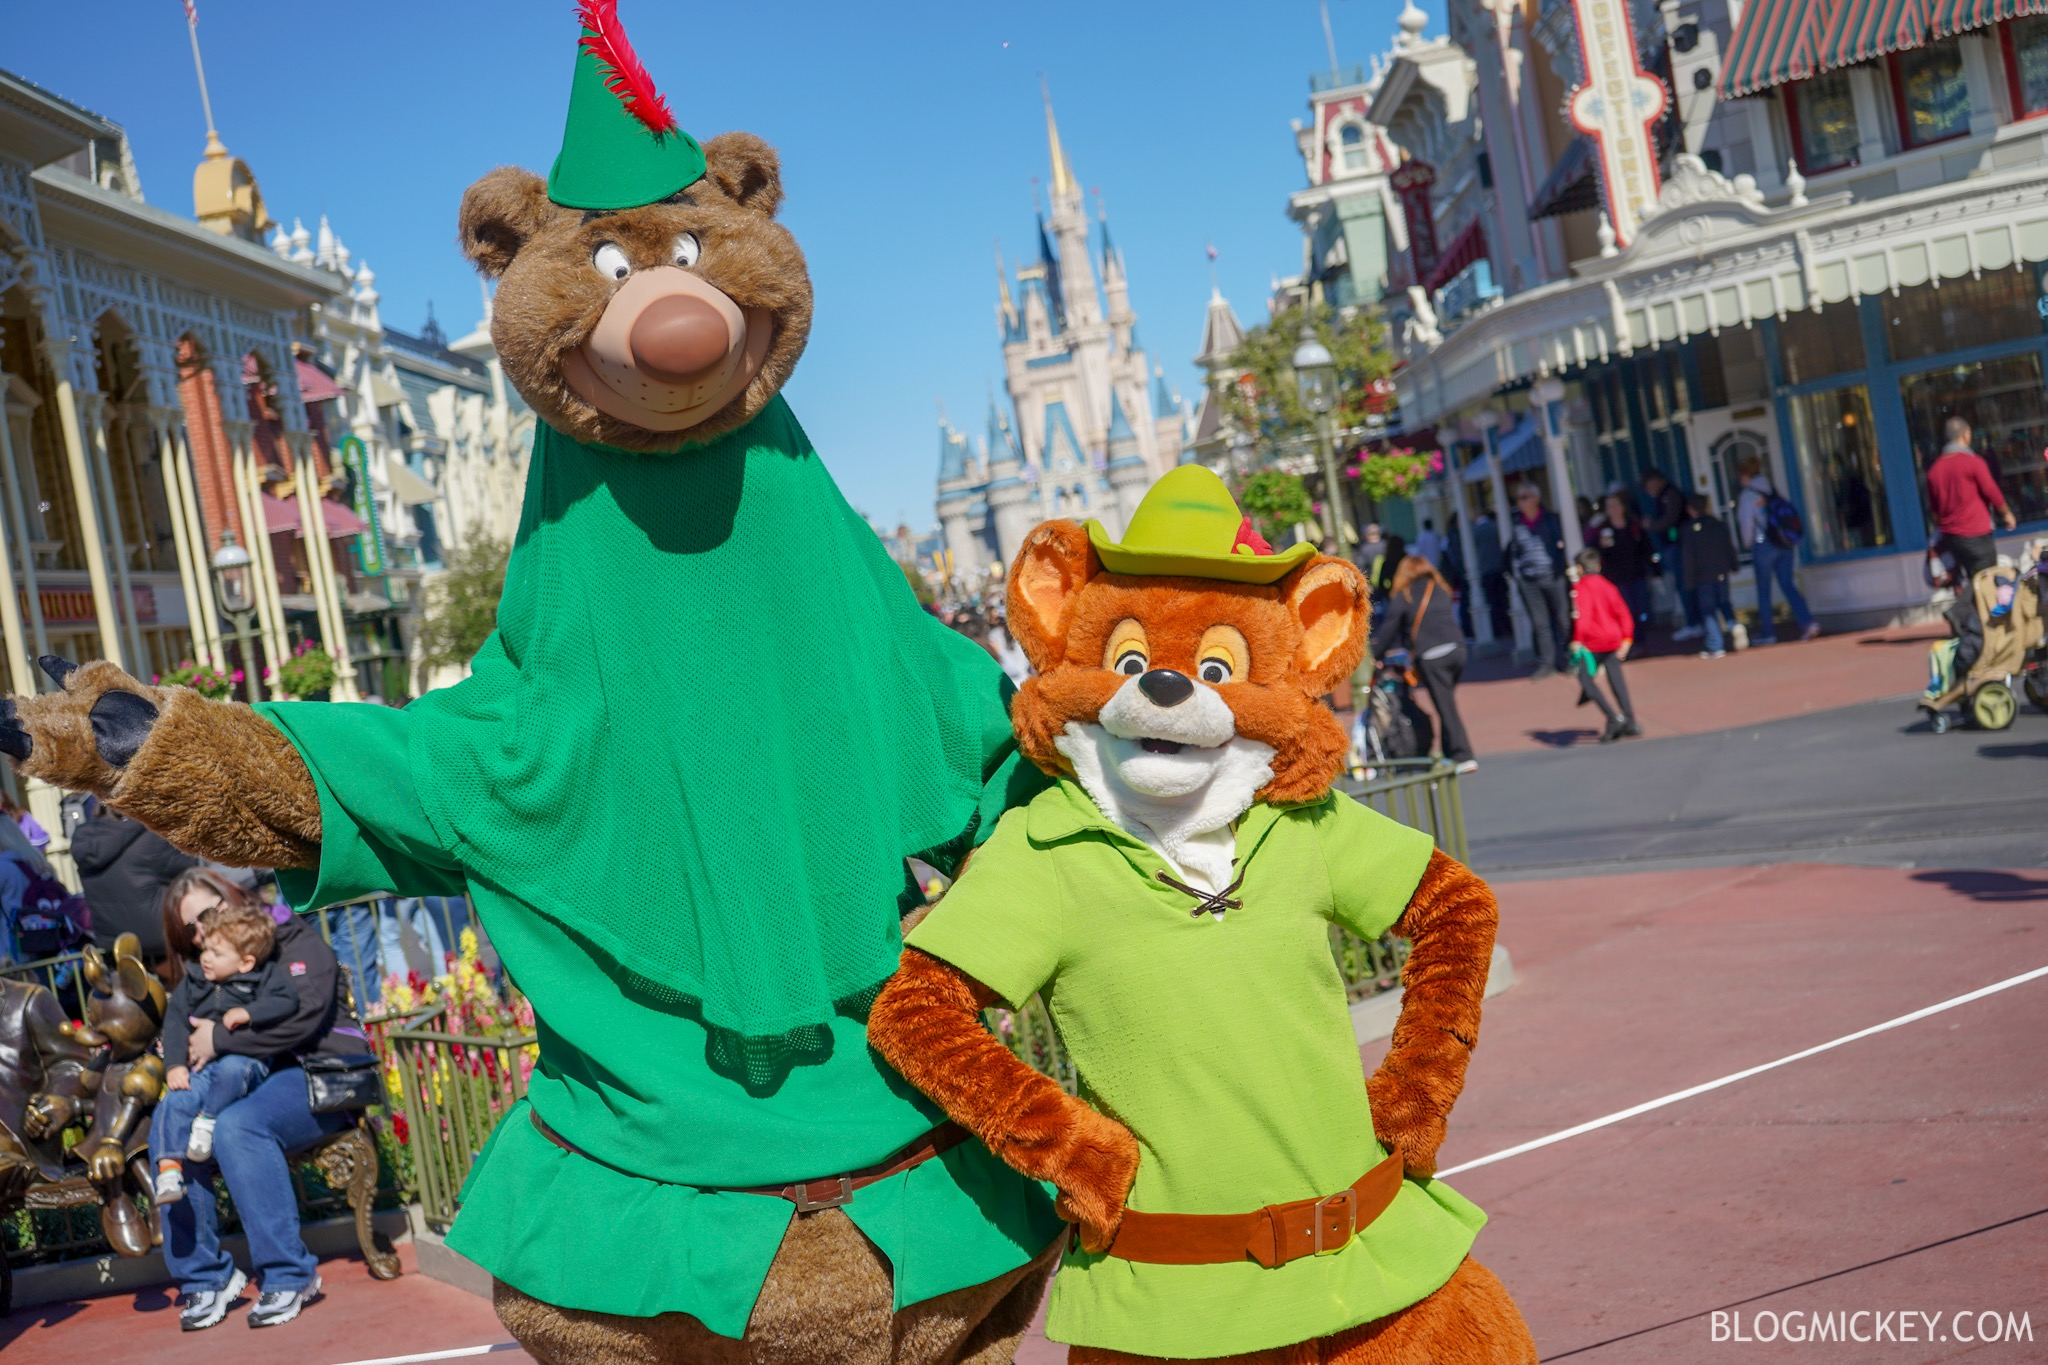 PHOTOS: Robin Hood Meet and Greet for Mickey and Minnie's Surprise